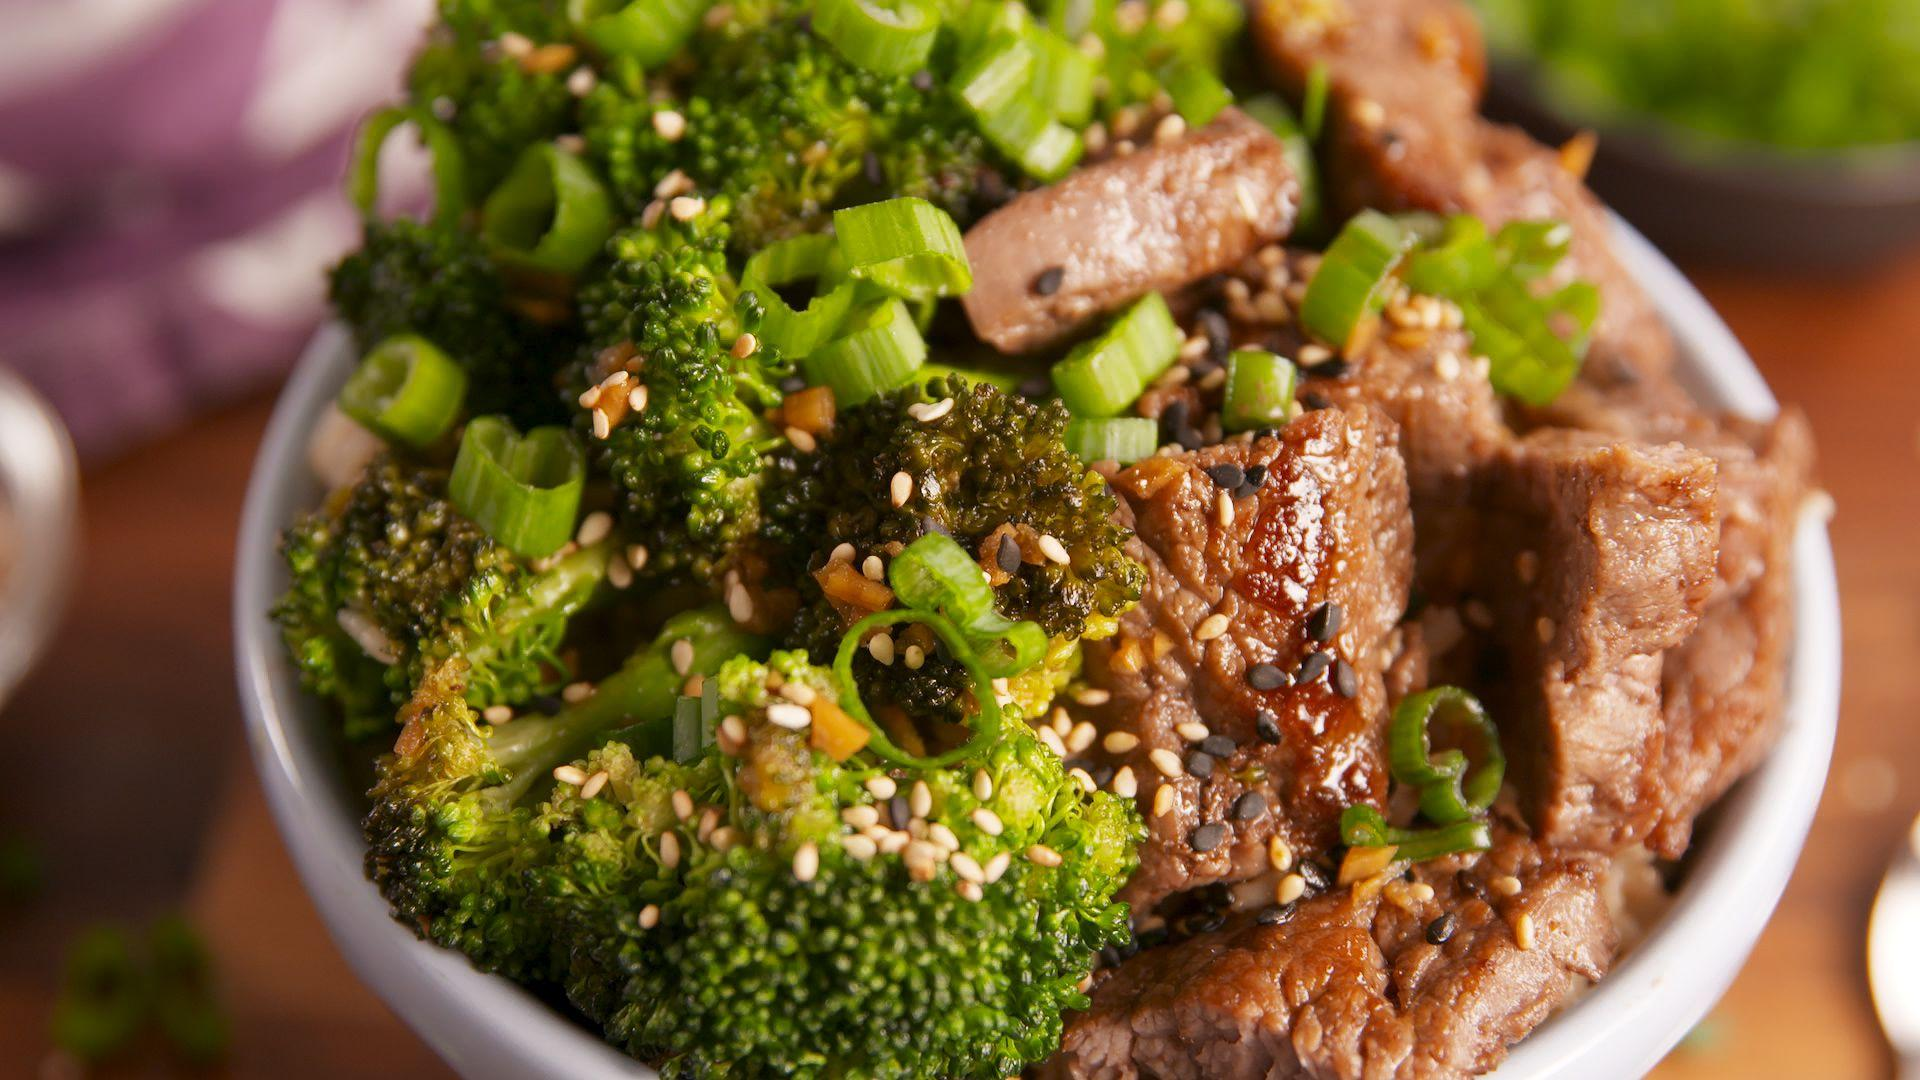 29 Broccoli Recipes That You'll Actually Get Excited About Eating | HuffPost Life